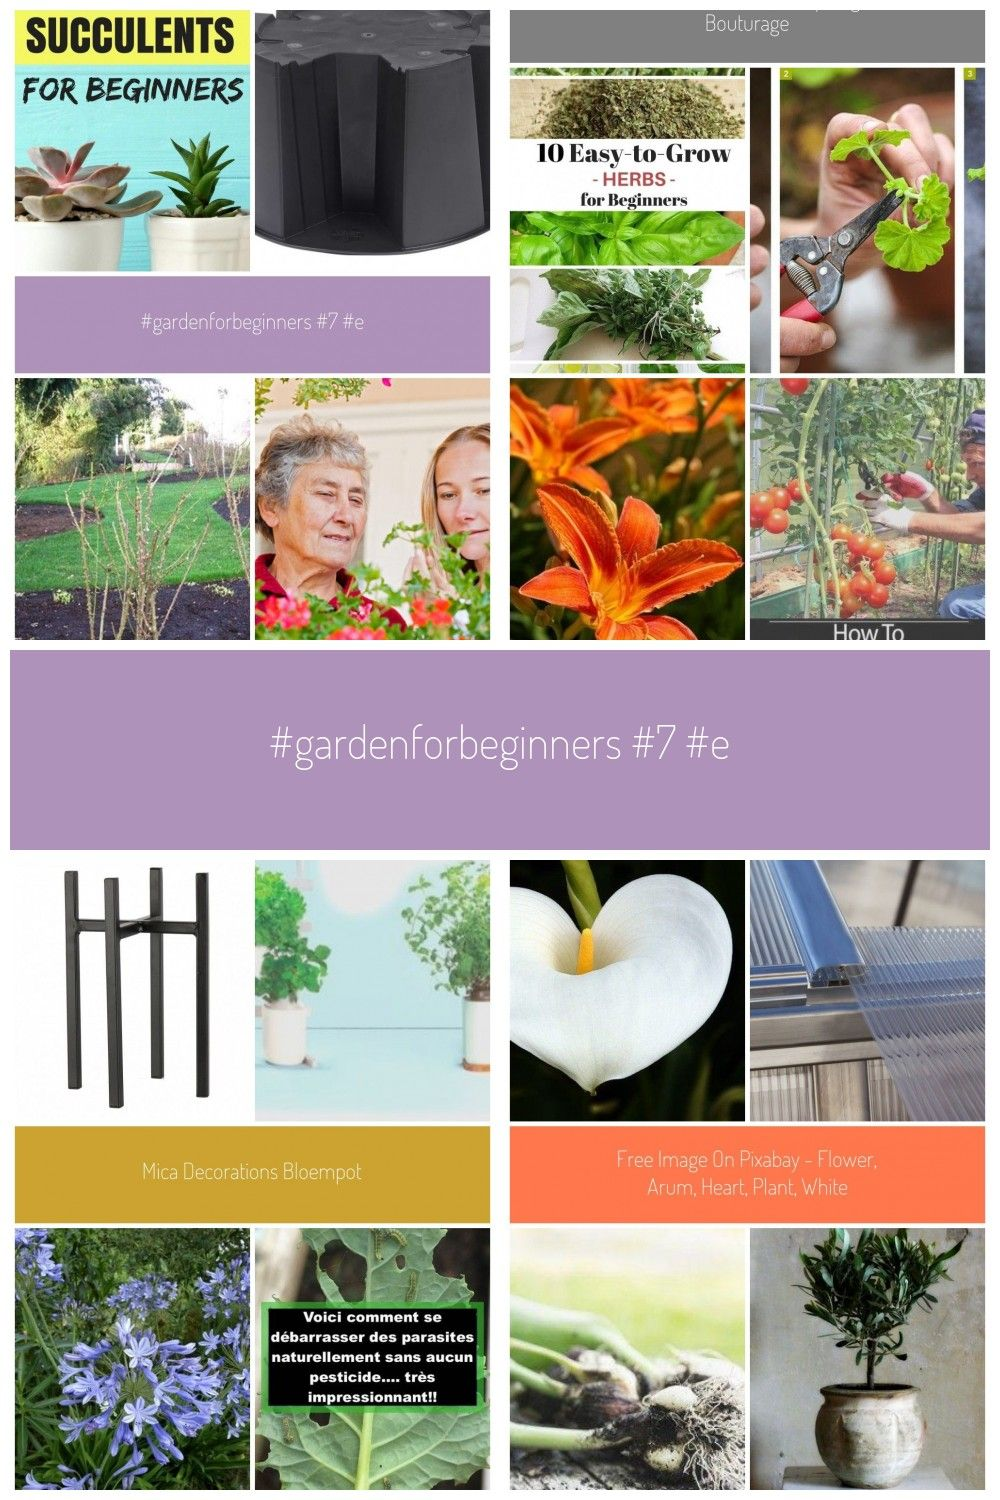 Nettoyage Jardin Génial Gardenforbeginners 7 Easy to 7 Easy to Grow Succulents for Of 32 Luxe Nettoyage Jardin